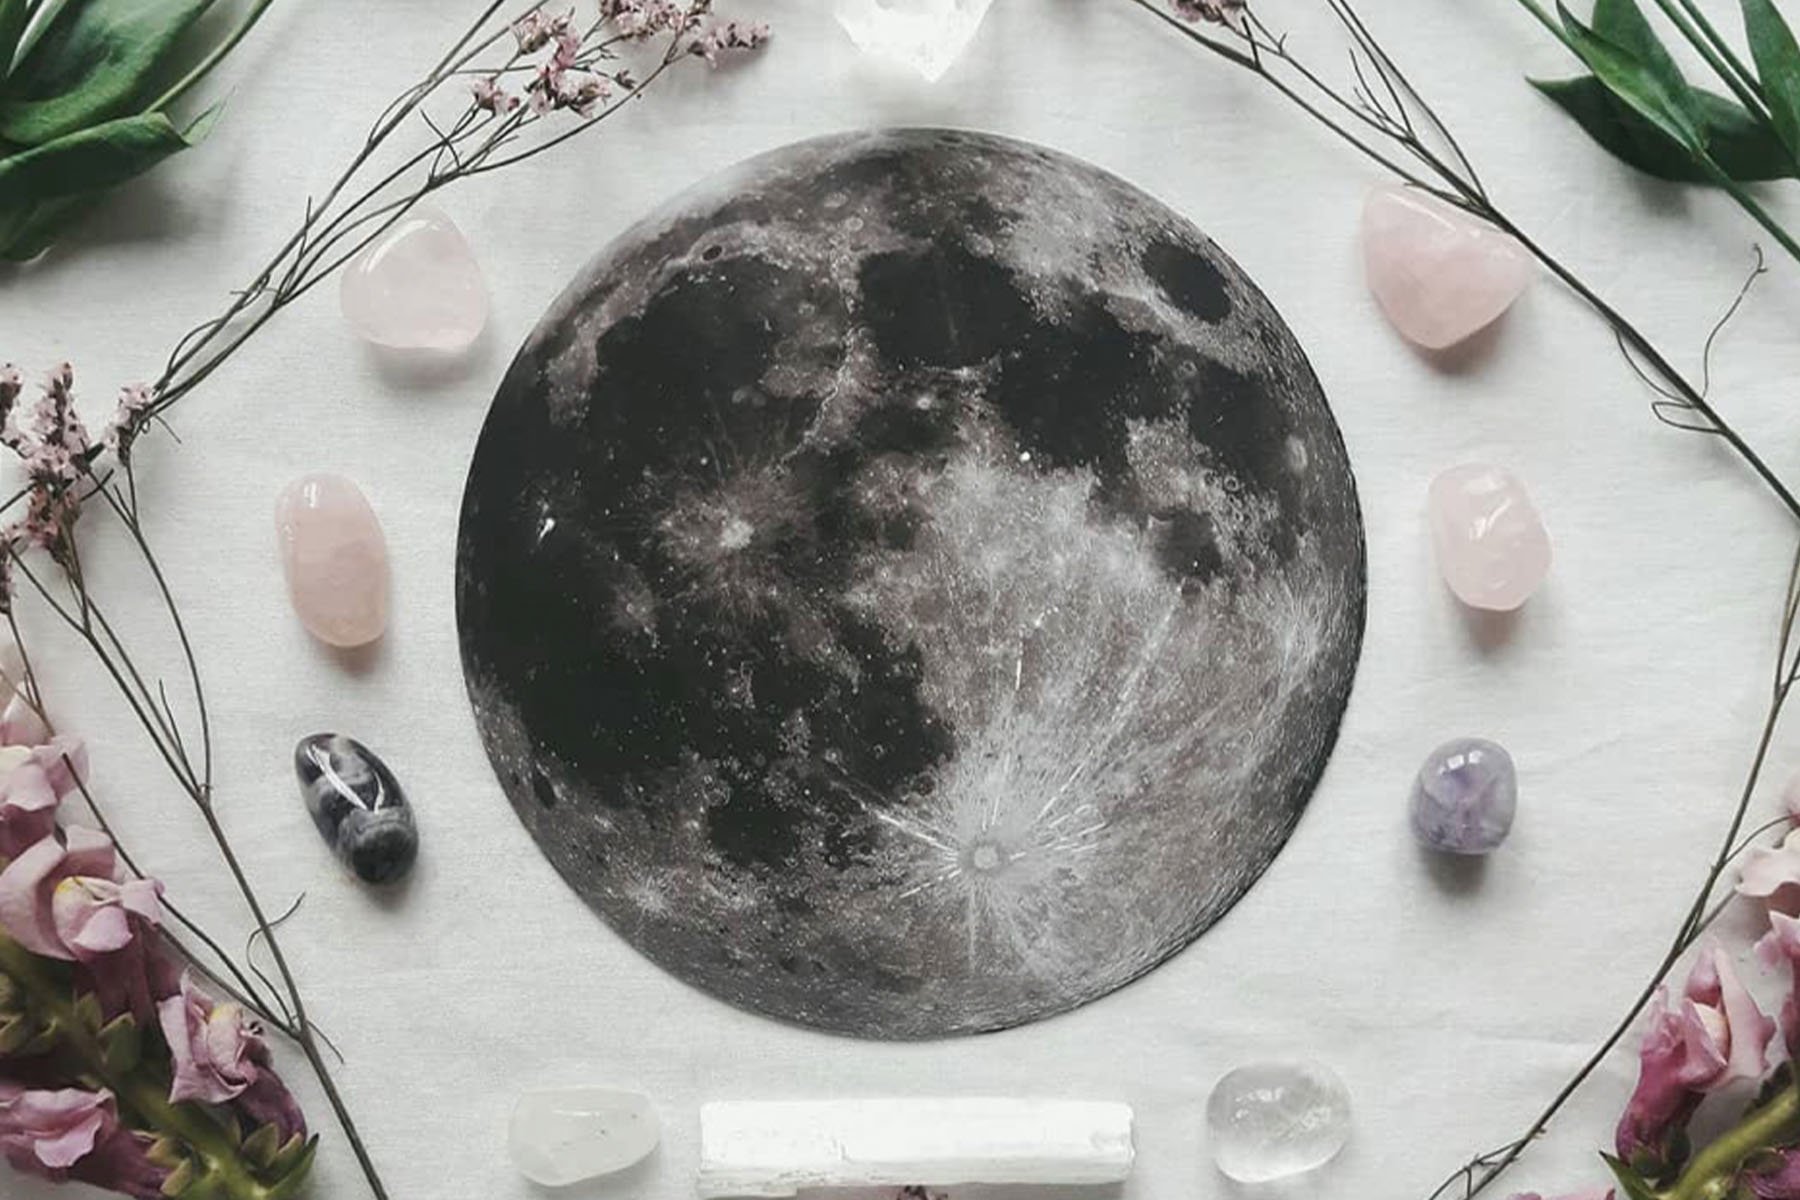 How to Use Healing Crystals for the Sagittarius Full Moon